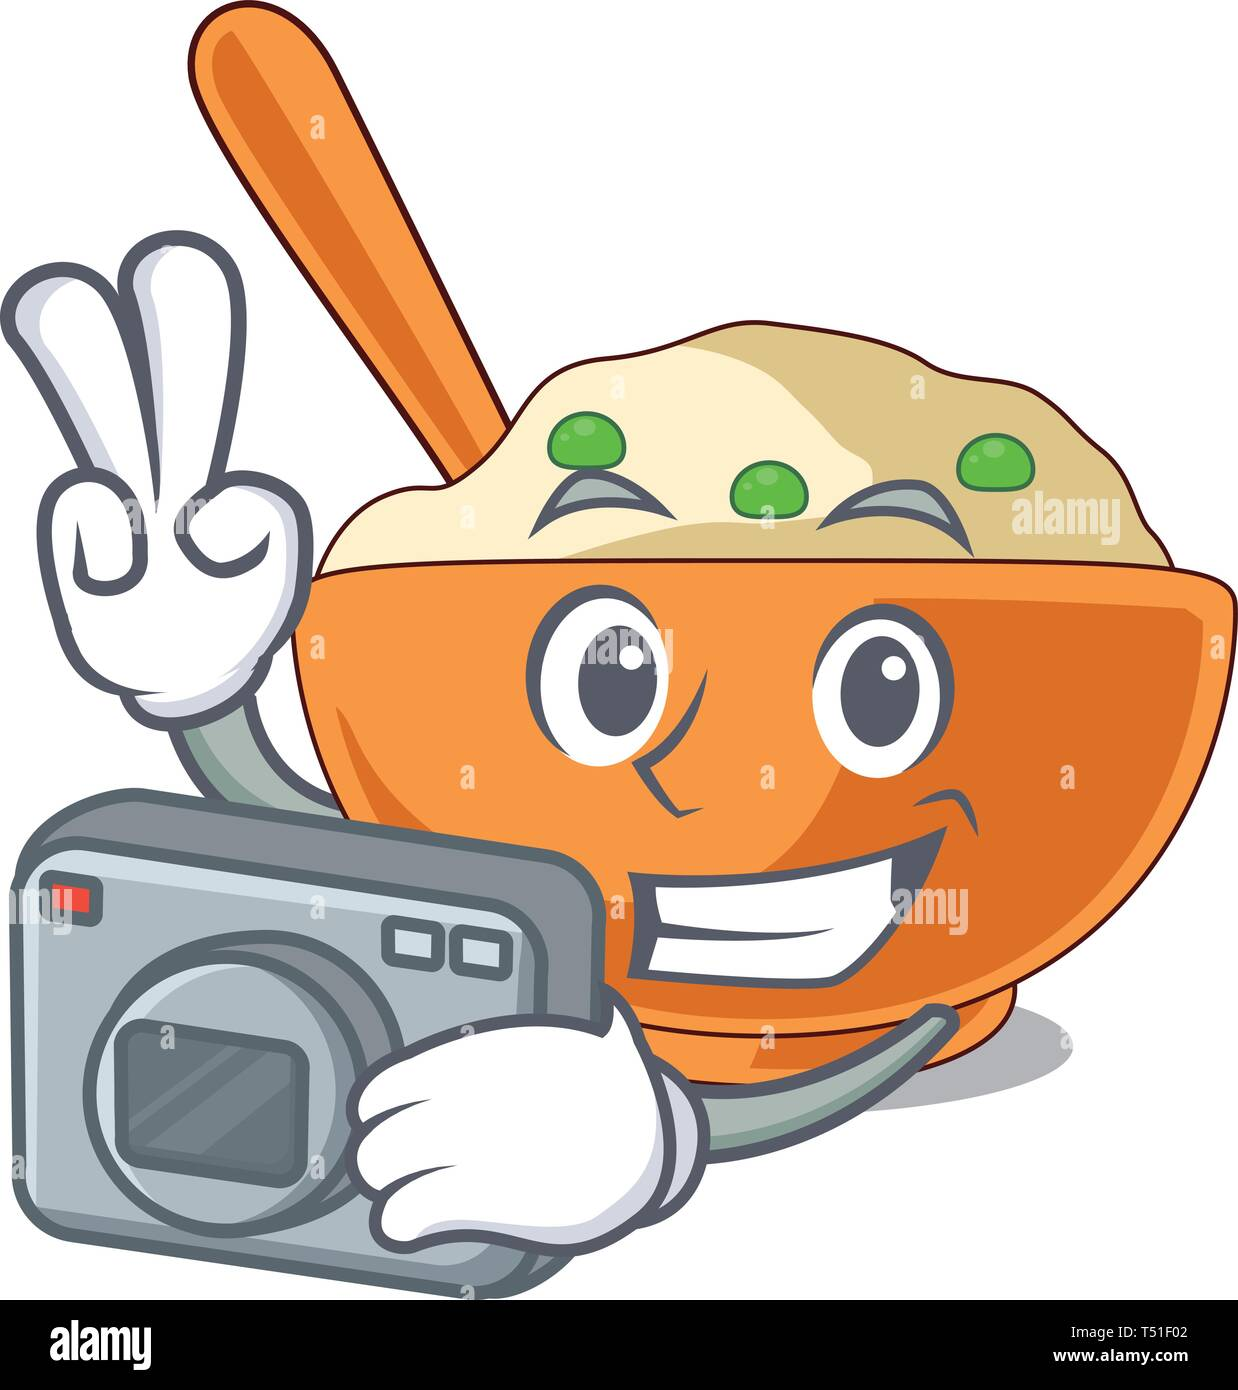 Photographer mashed potato in the shape mascot - Stock Vector